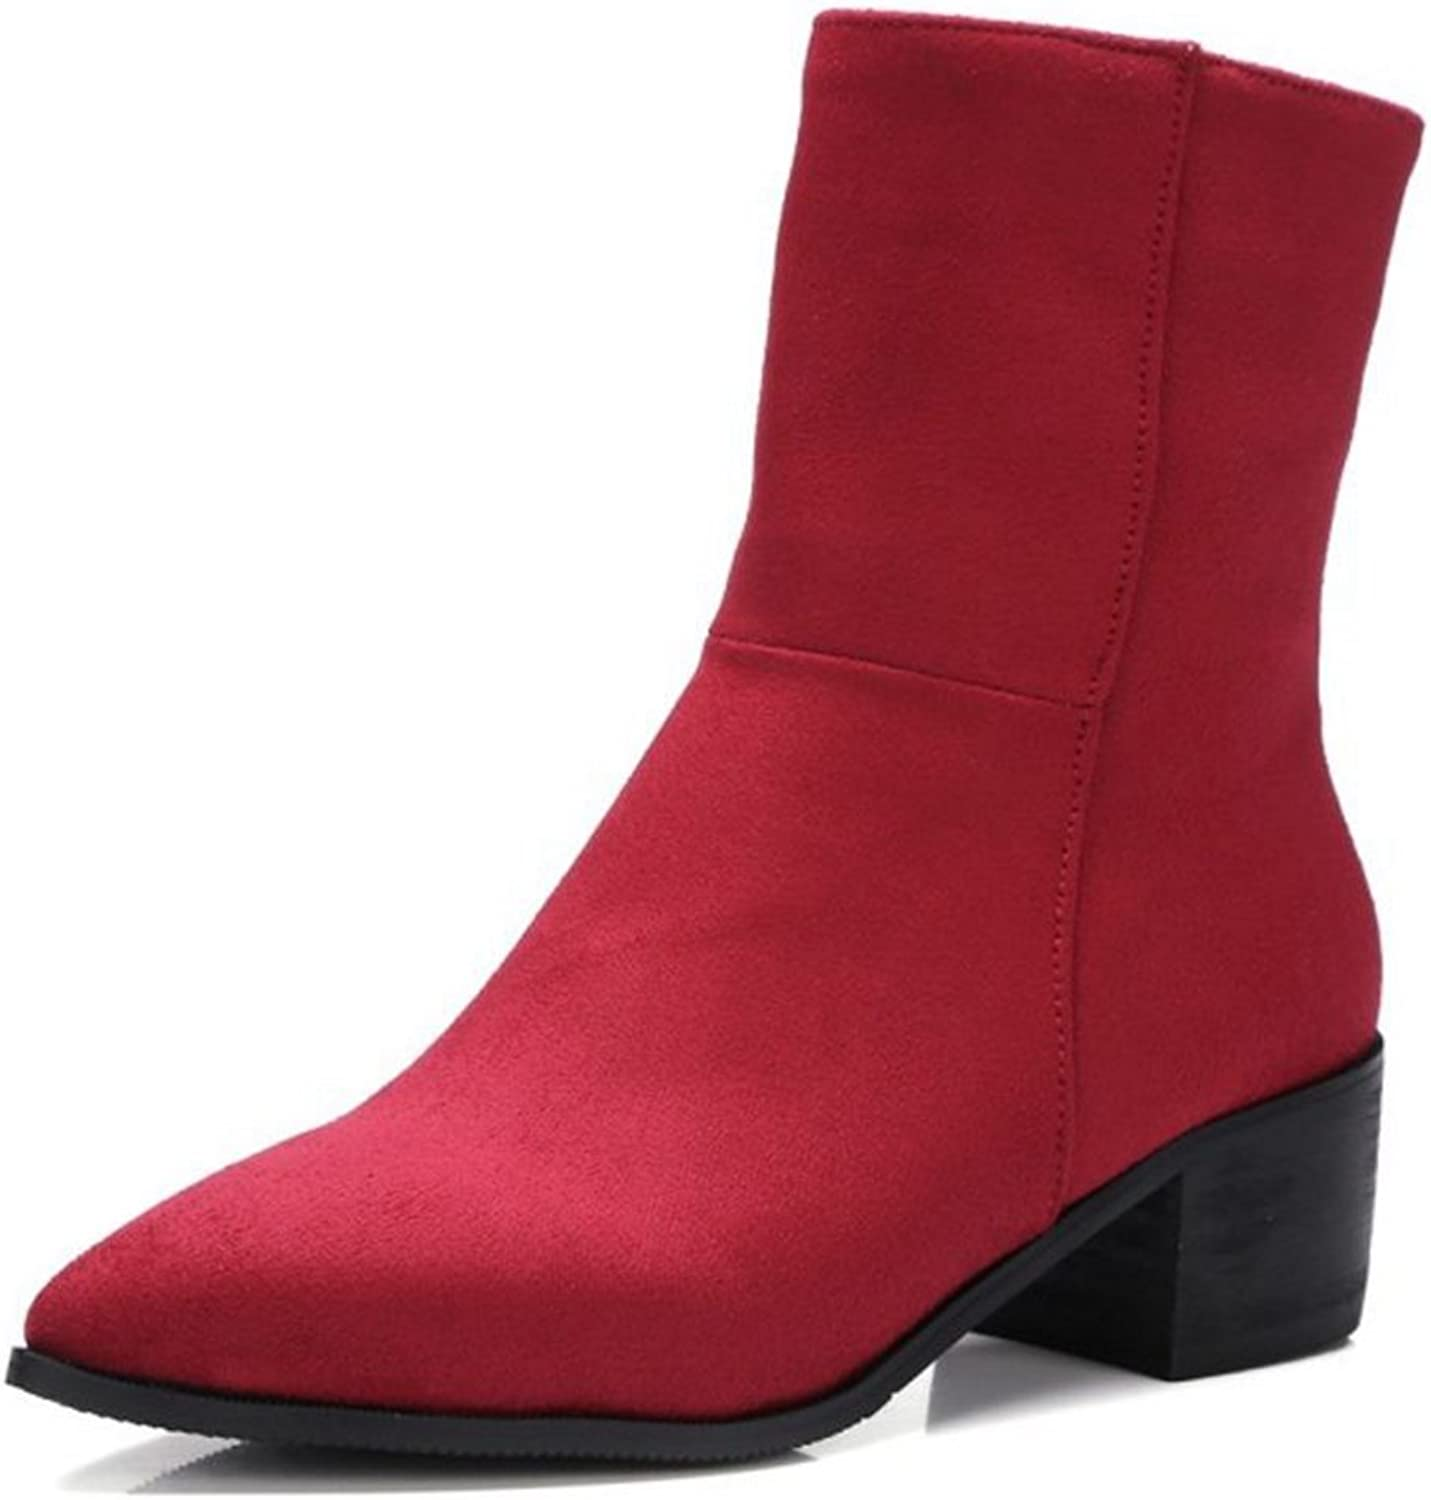 Smilice Large Size & Small Size Women Fashion Pointed Toe Zip Ankle Boots Solid color shoes Black